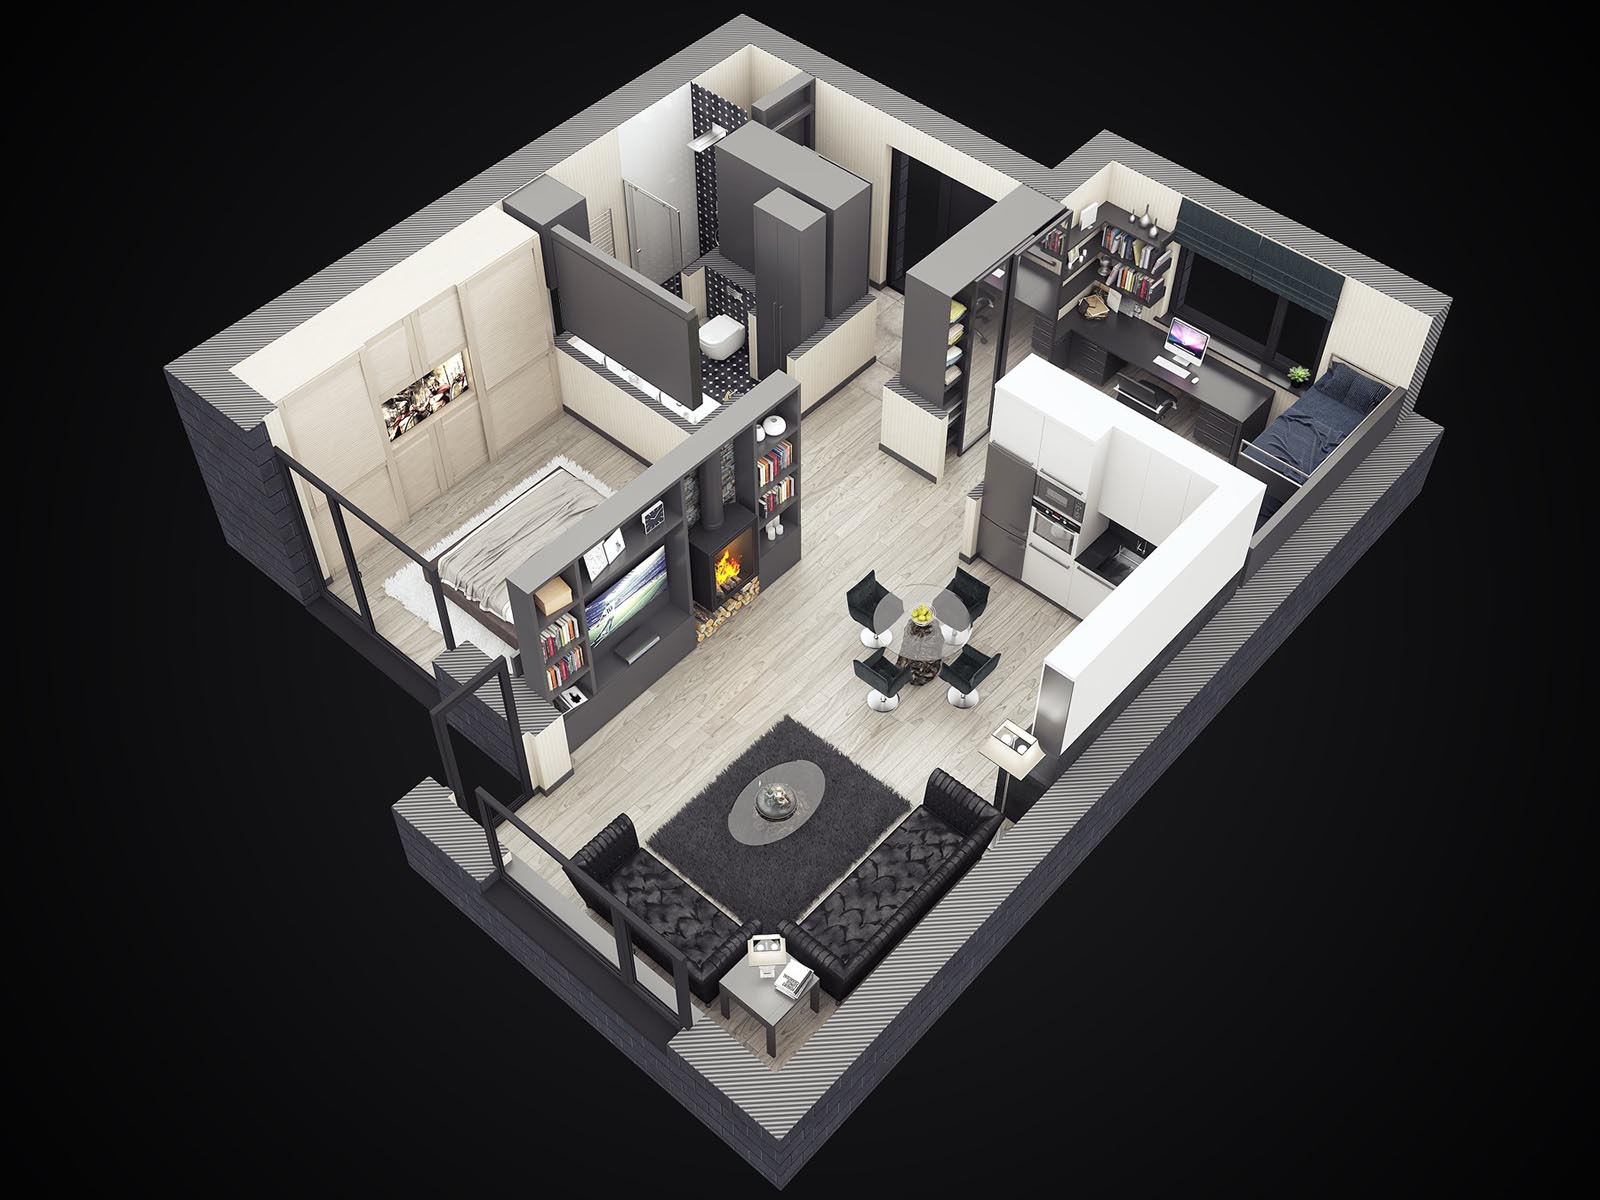 3D visualizations- render of a Cottage Modern interior